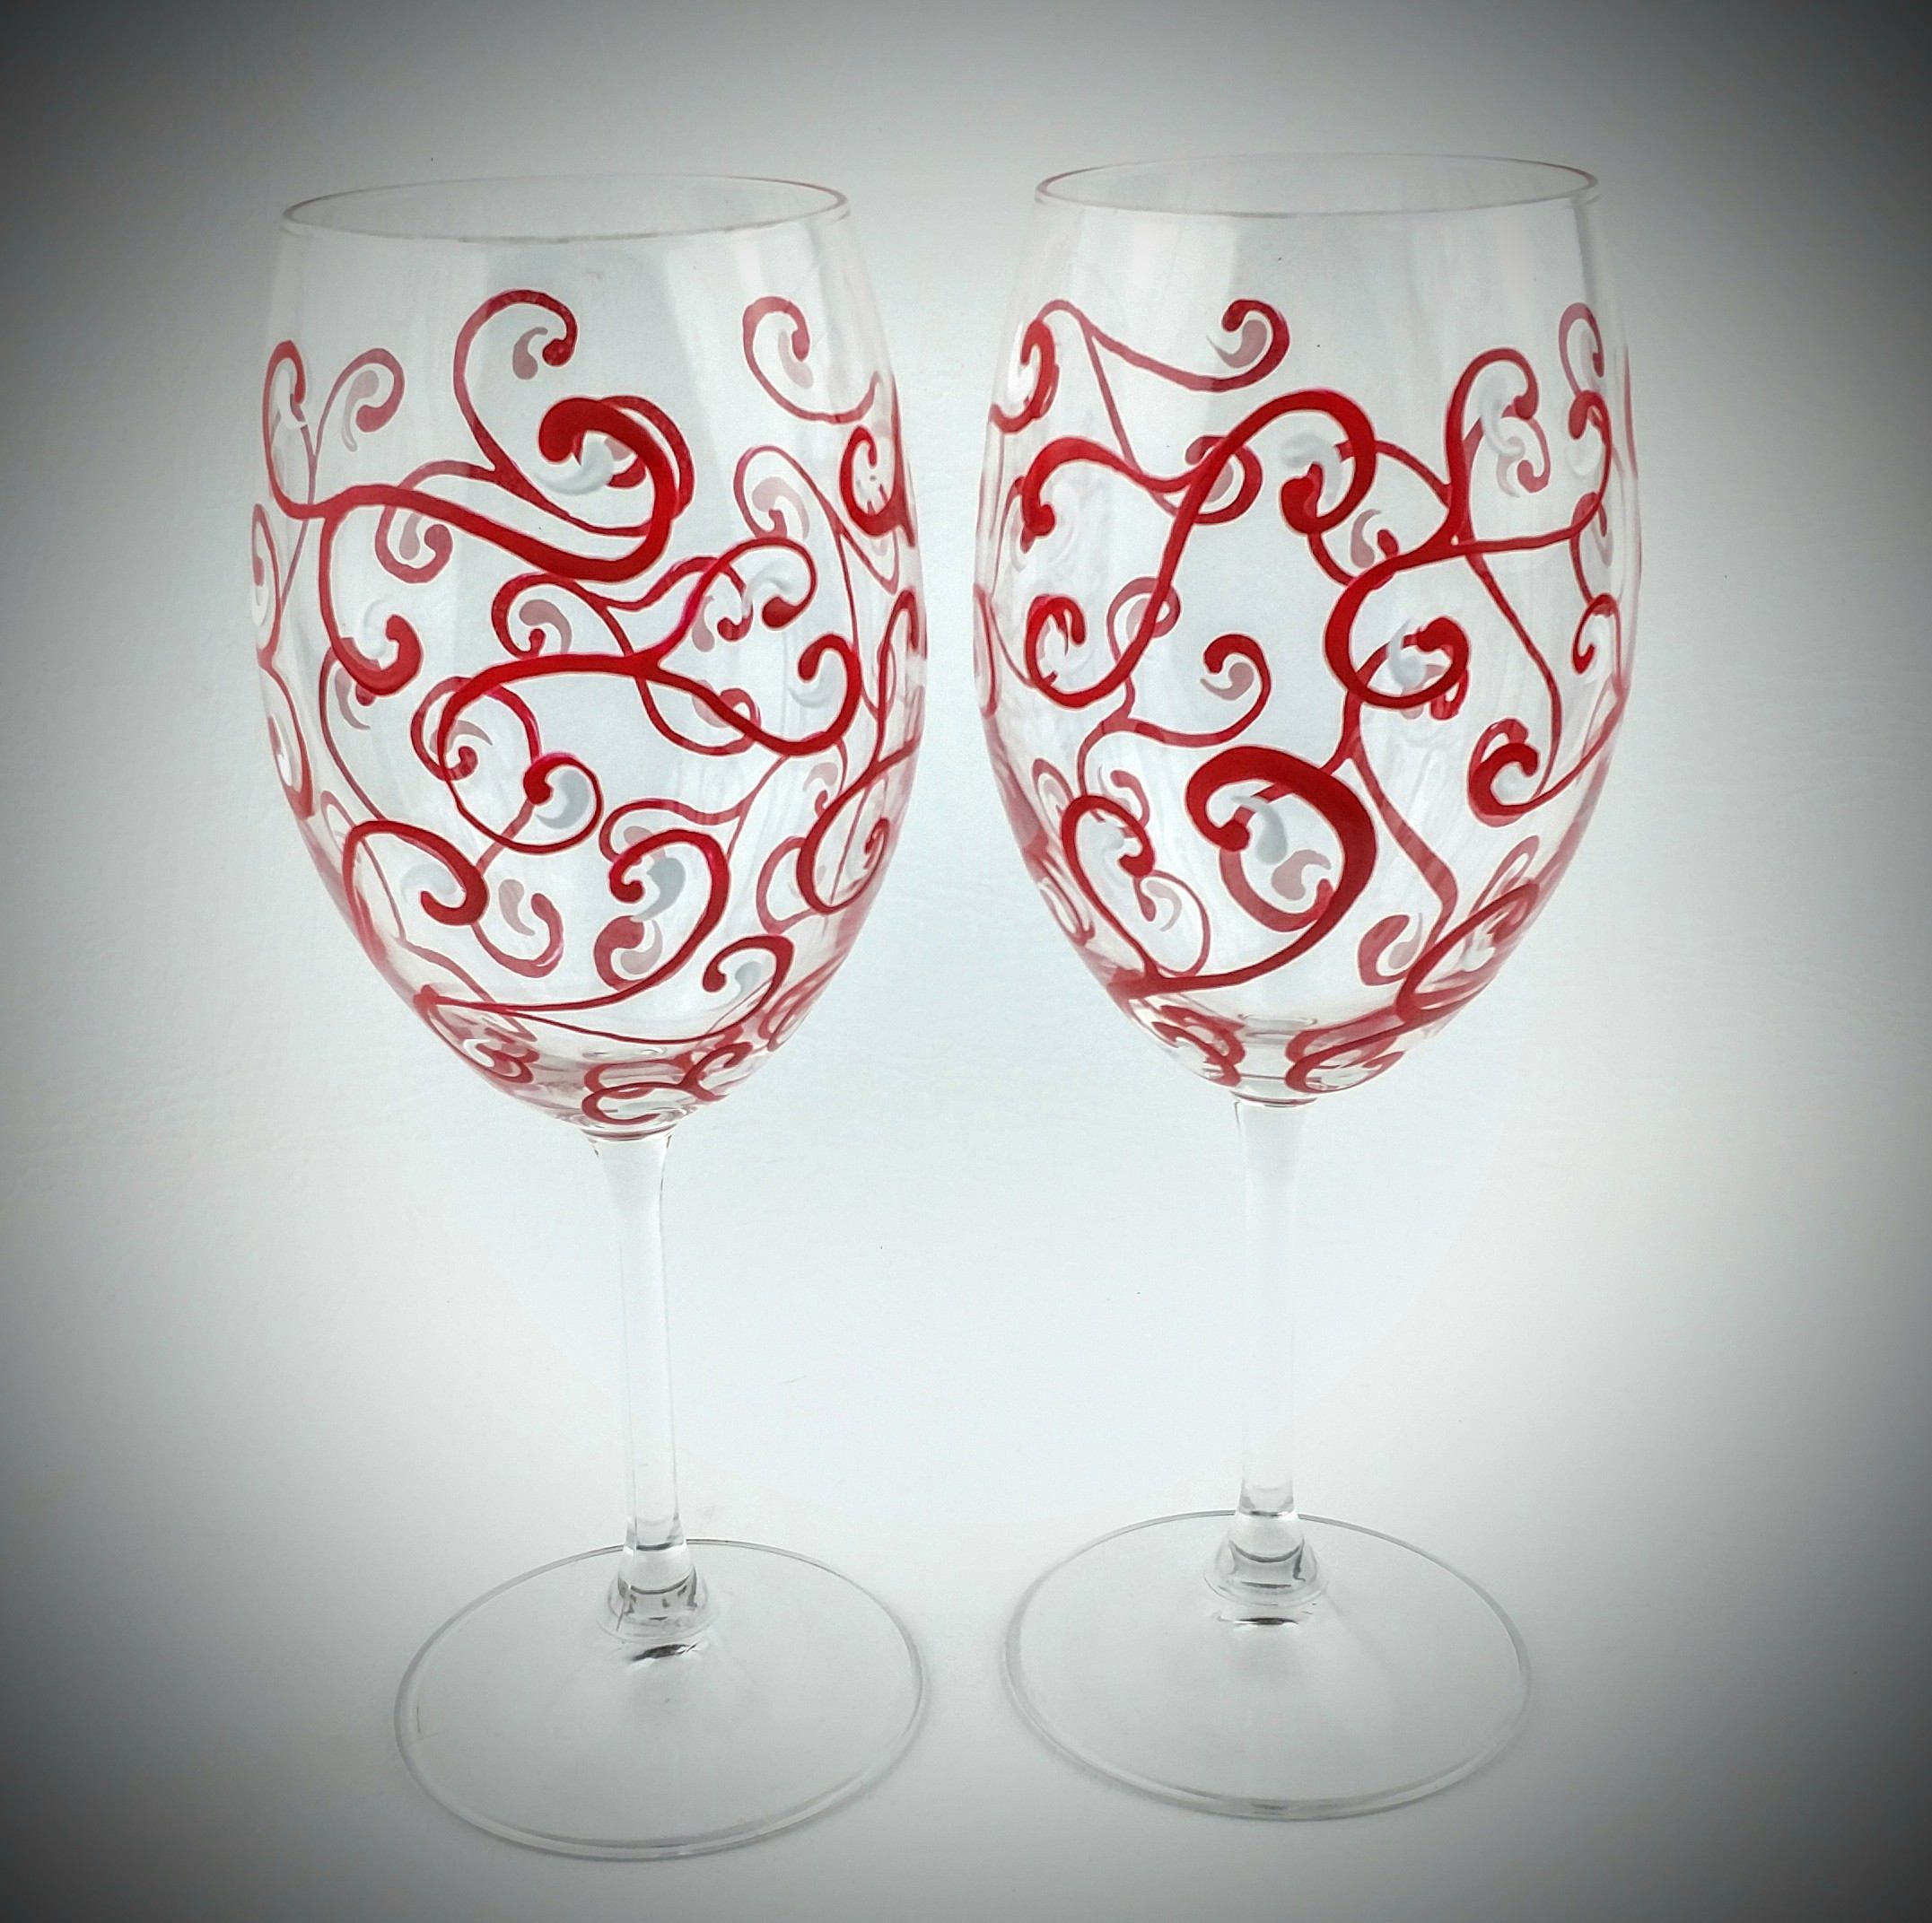 High Quality Wine Glasses Red Swirl Wine Glasses Hand Painted Elegant High